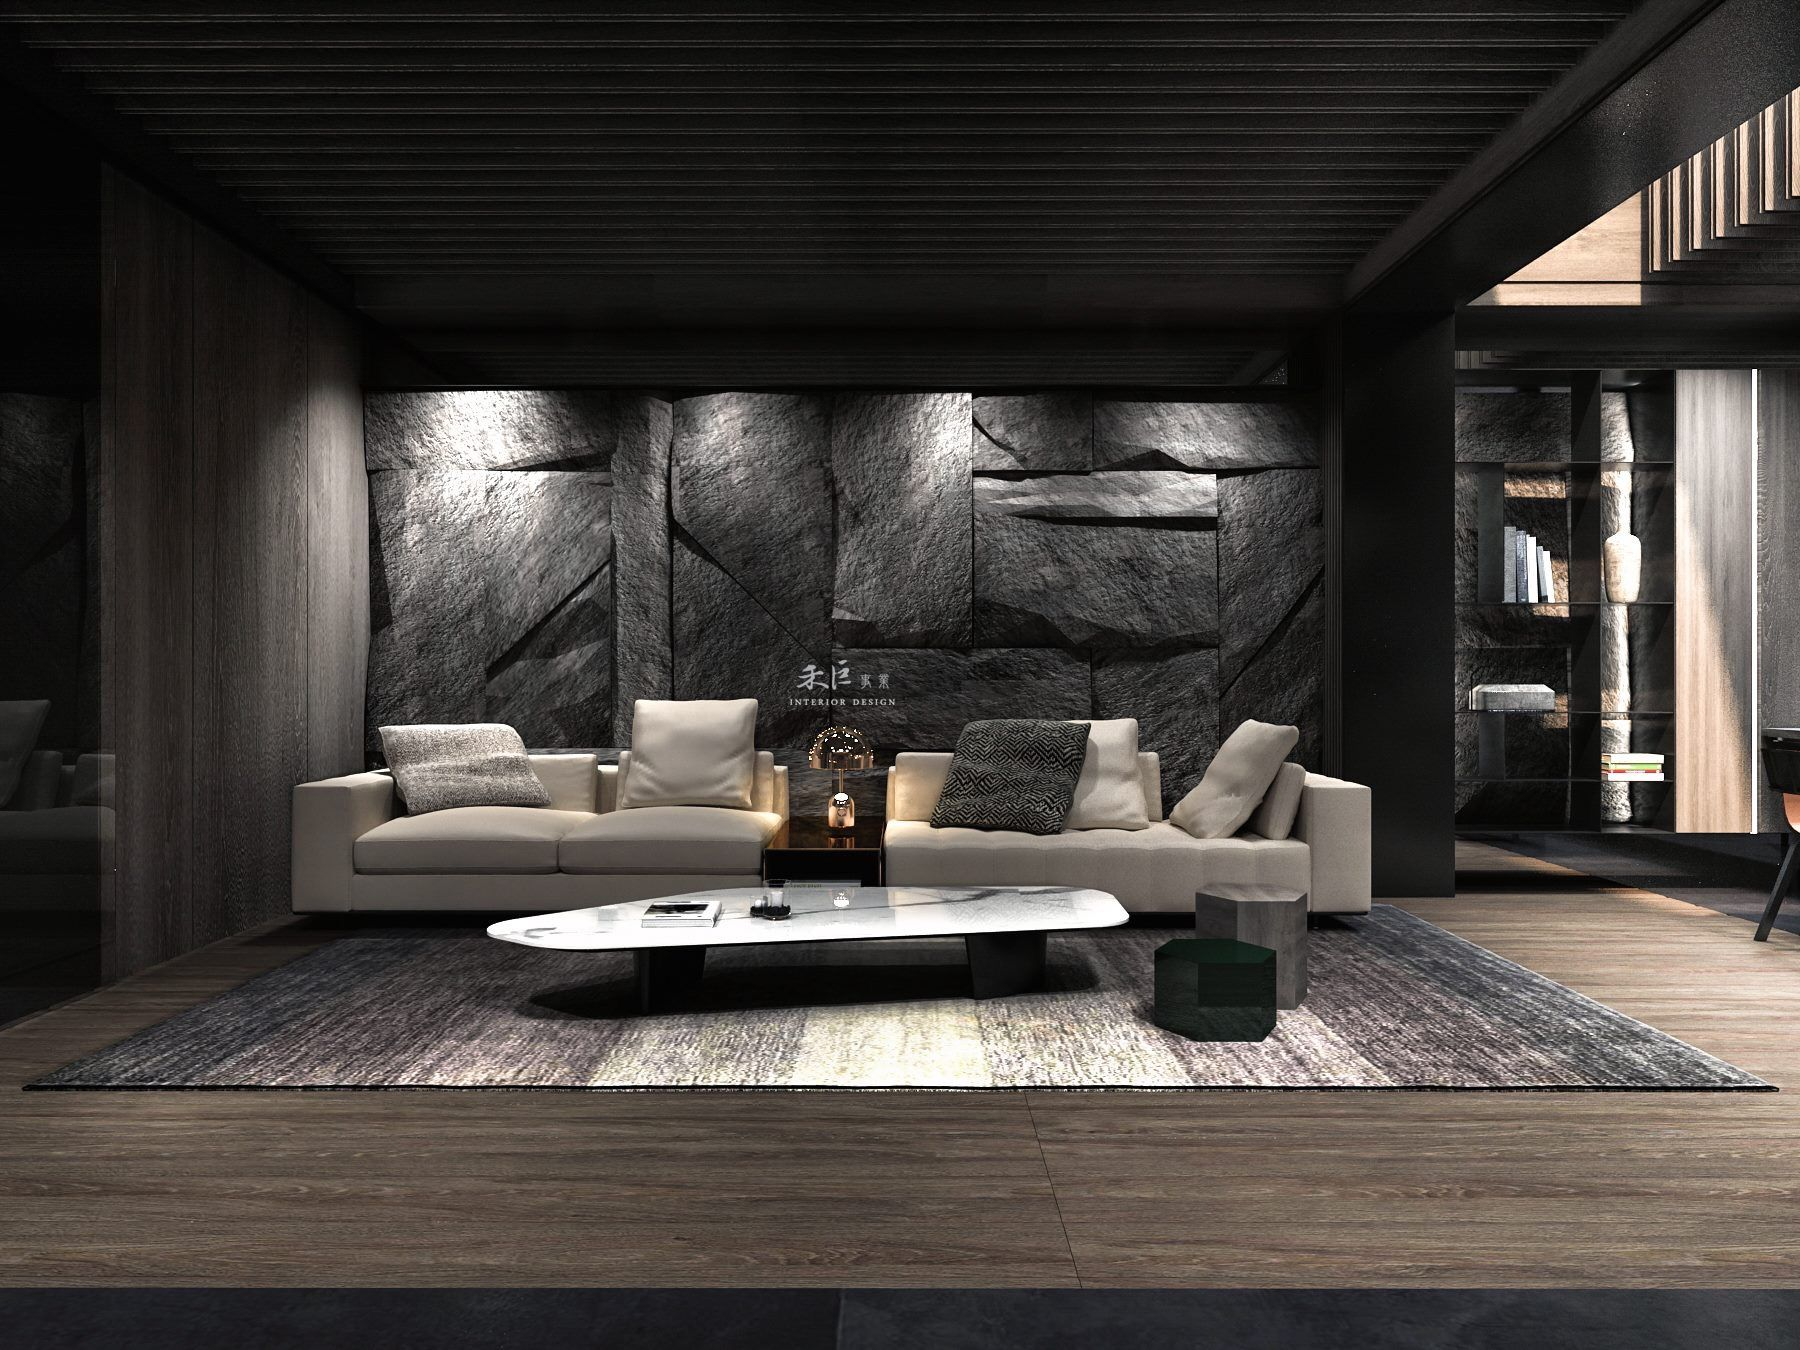 Home living room background